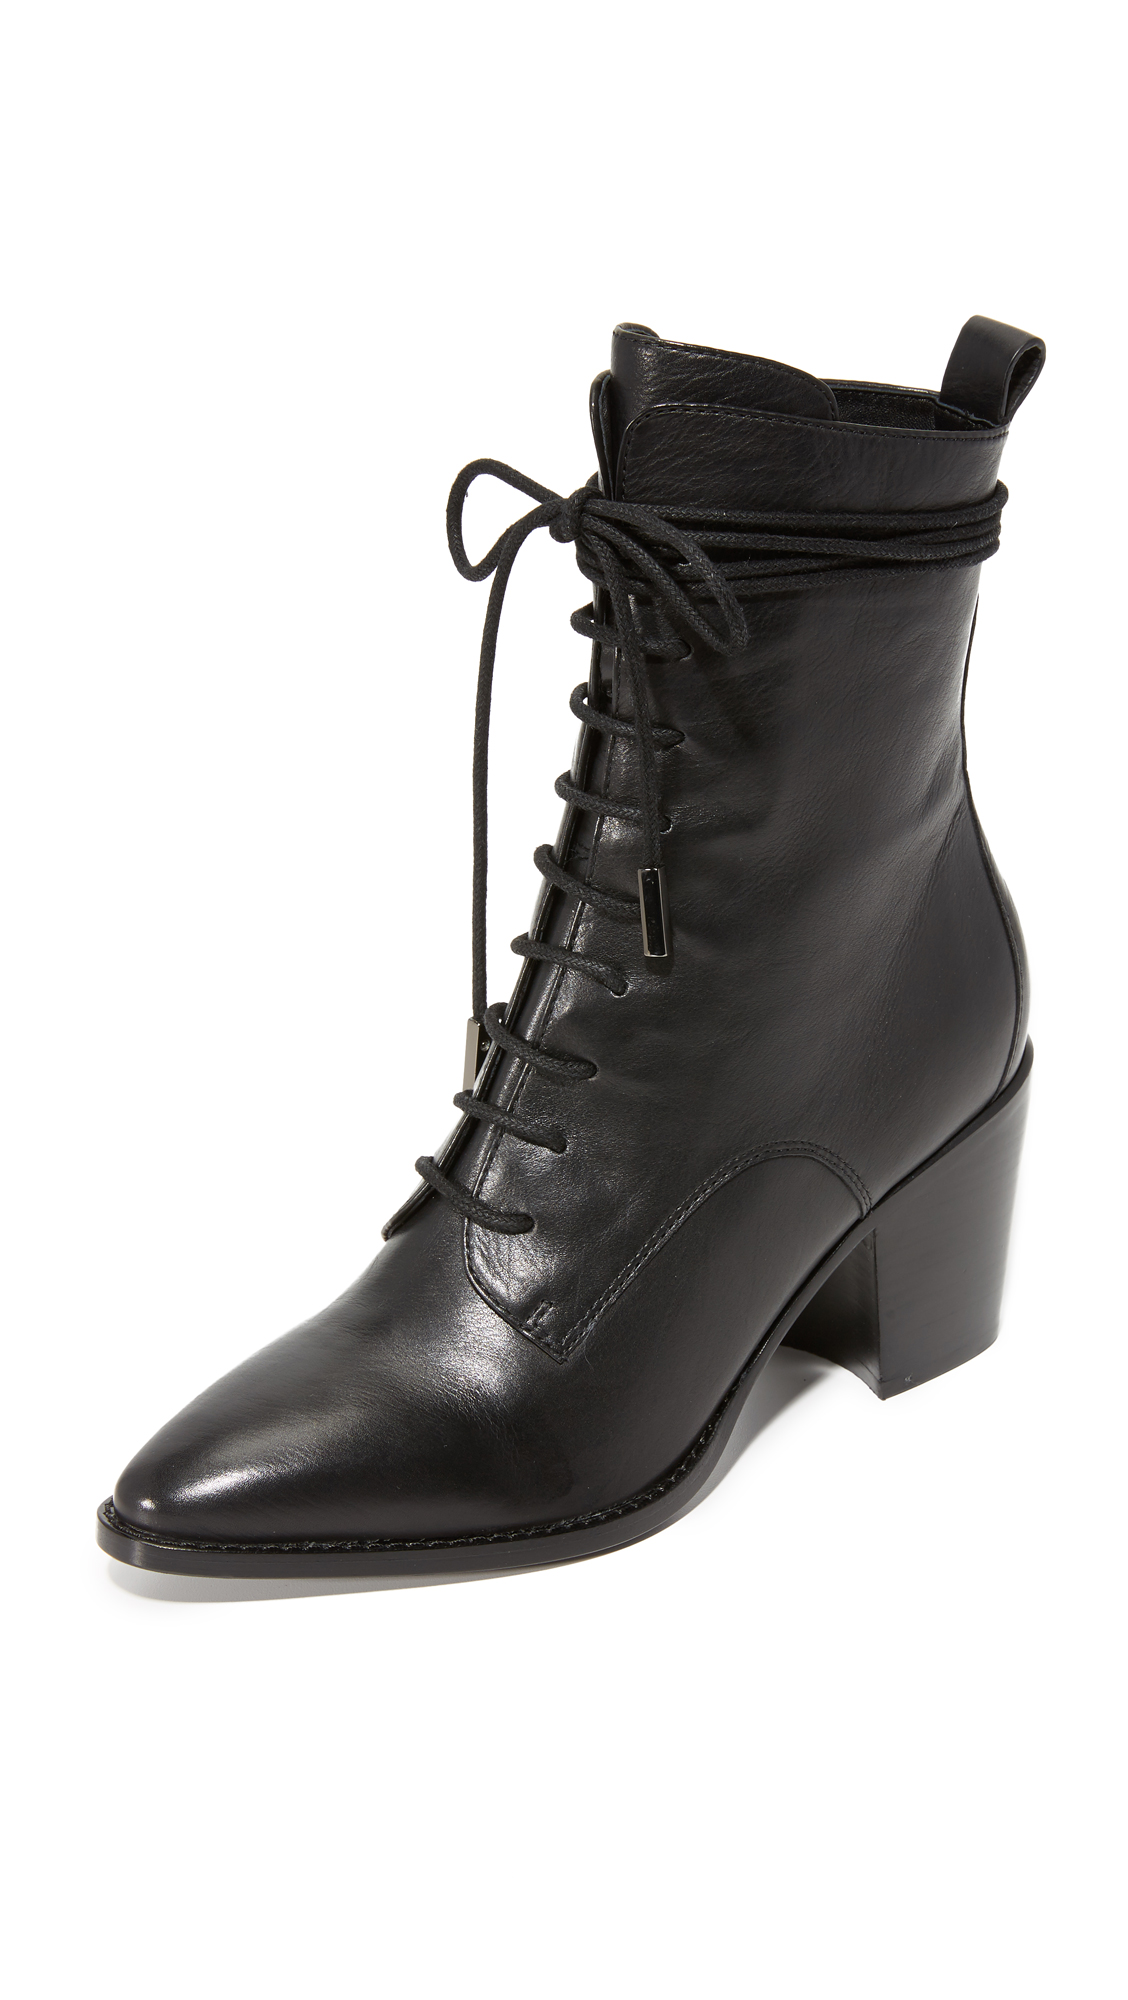 Sigerson Morrison Duran Lace Up Boots - Black